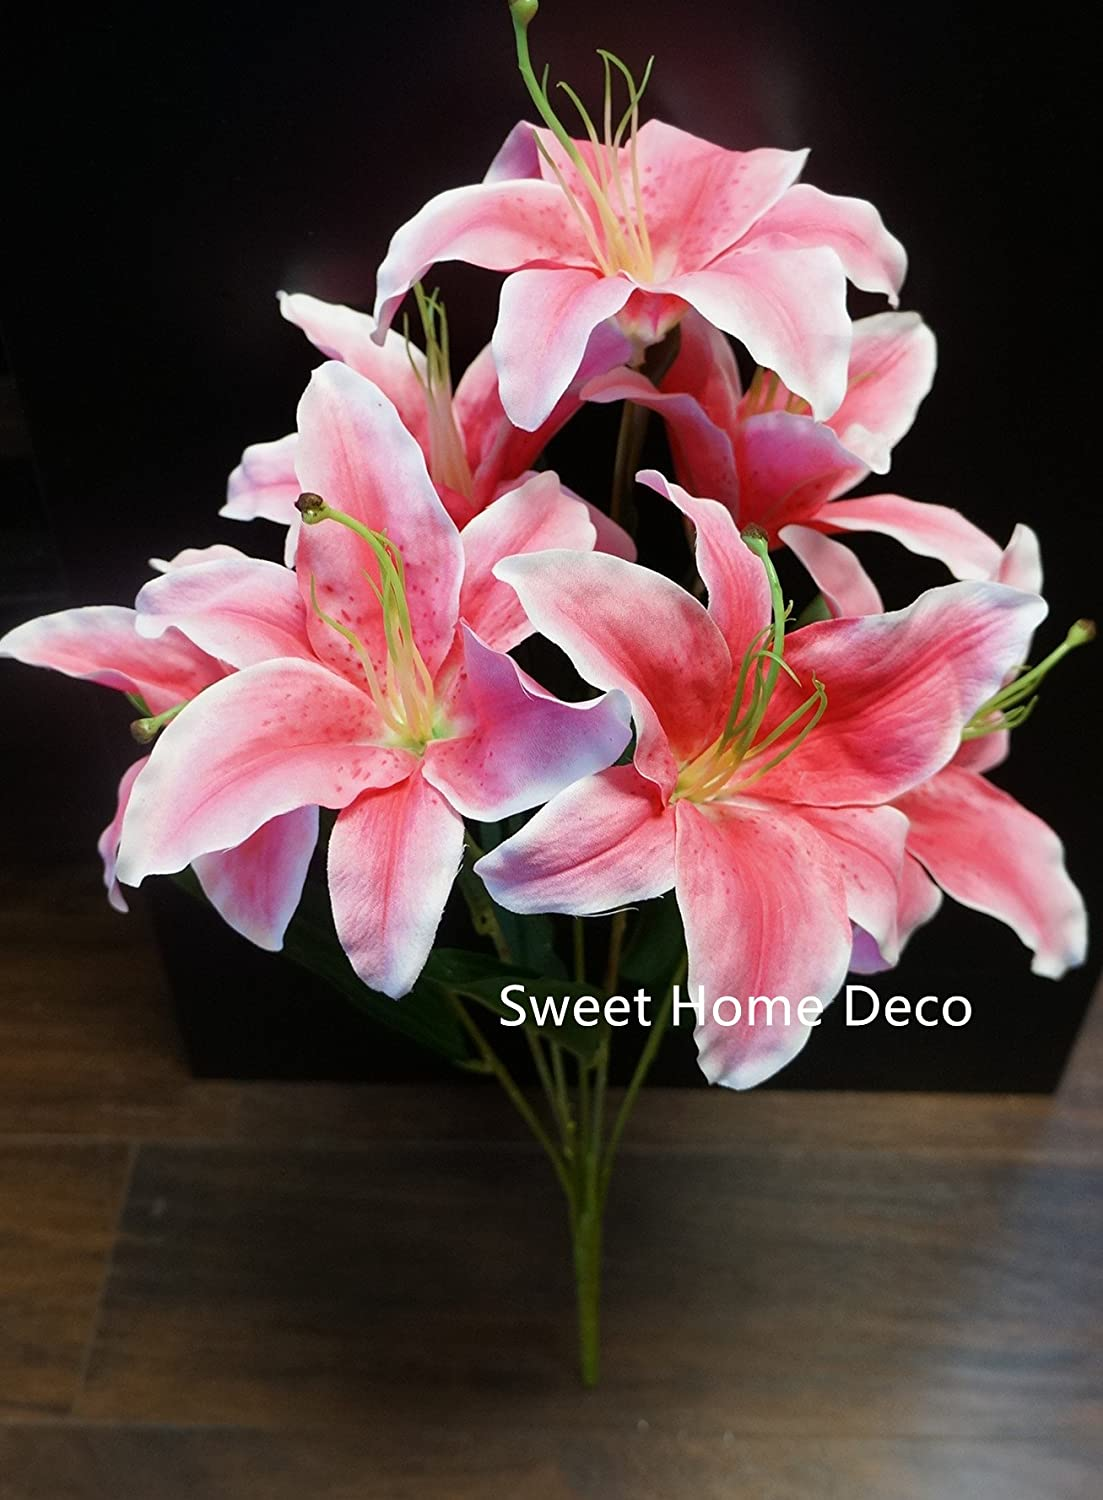 Amazon sweet home deco 22 silk stargazer lily artificial amazon sweet home deco 22 silk stargazer lily artificial flower bouquet 7 flower heads homewedding decoration pink home kitchen izmirmasajfo